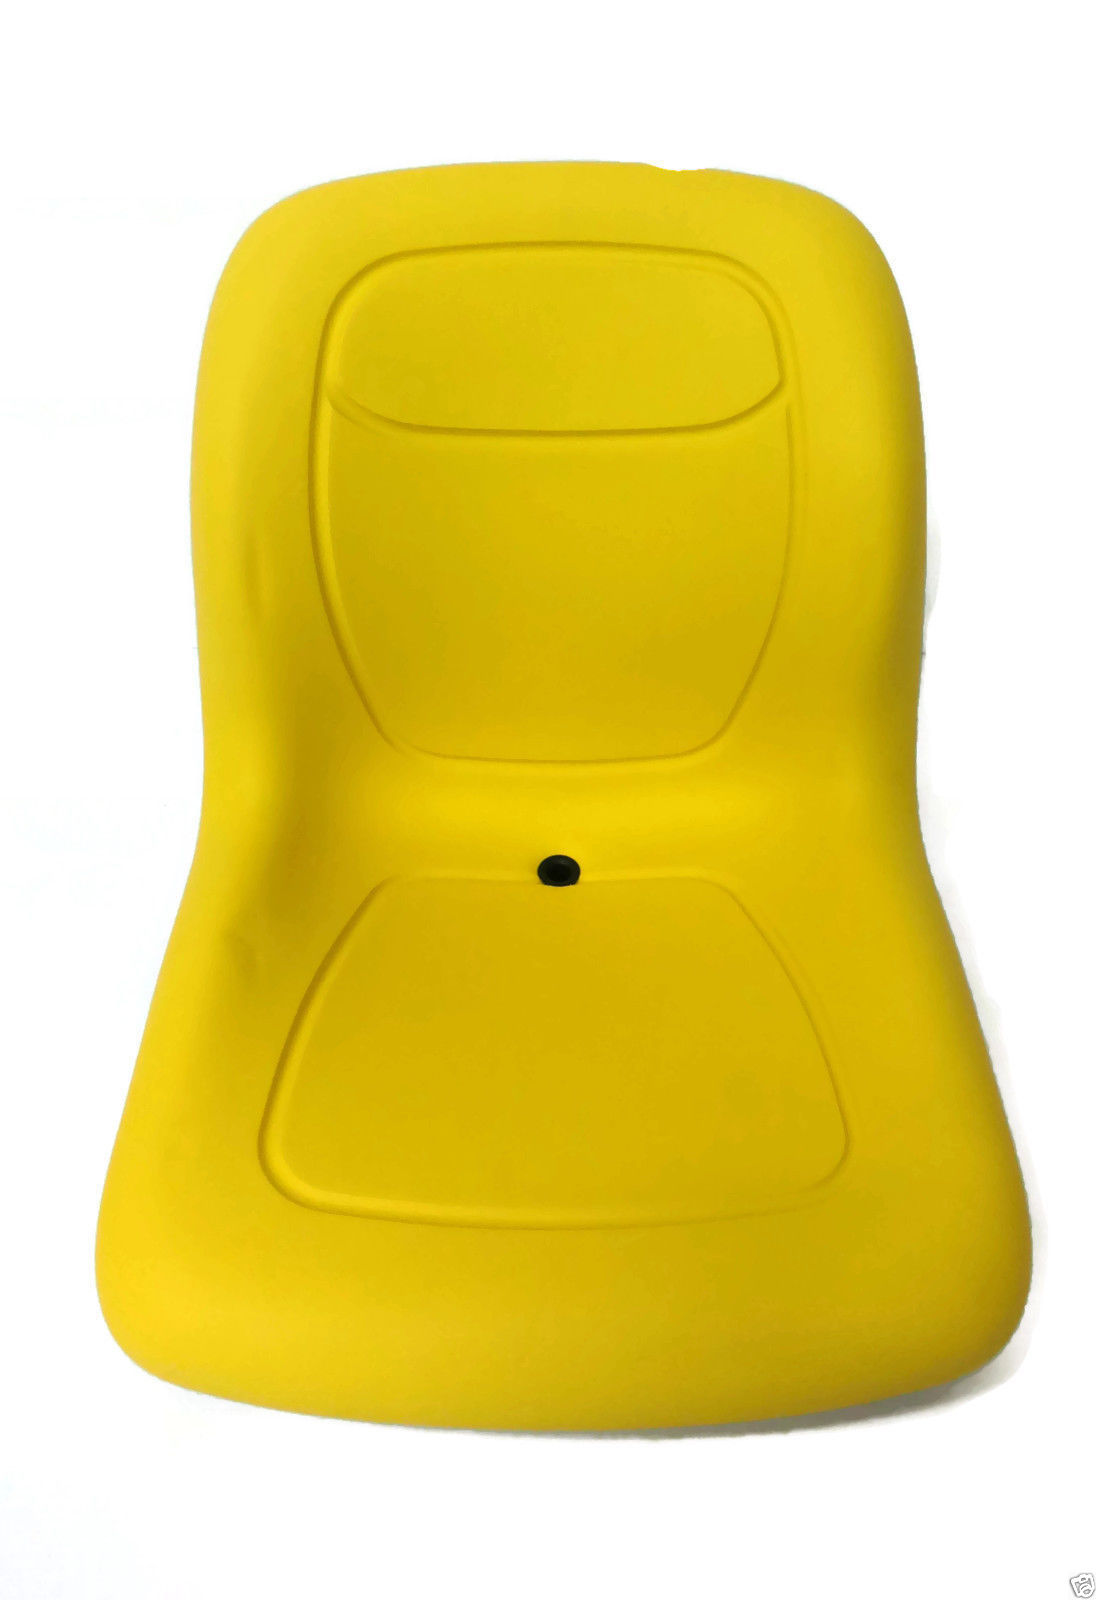 HIGH BACK YELLOW SEATS FITS JD JOHN DEERE 2210 COMPACT TRACTORS LVA12751  #MQ - Seat Warehouse